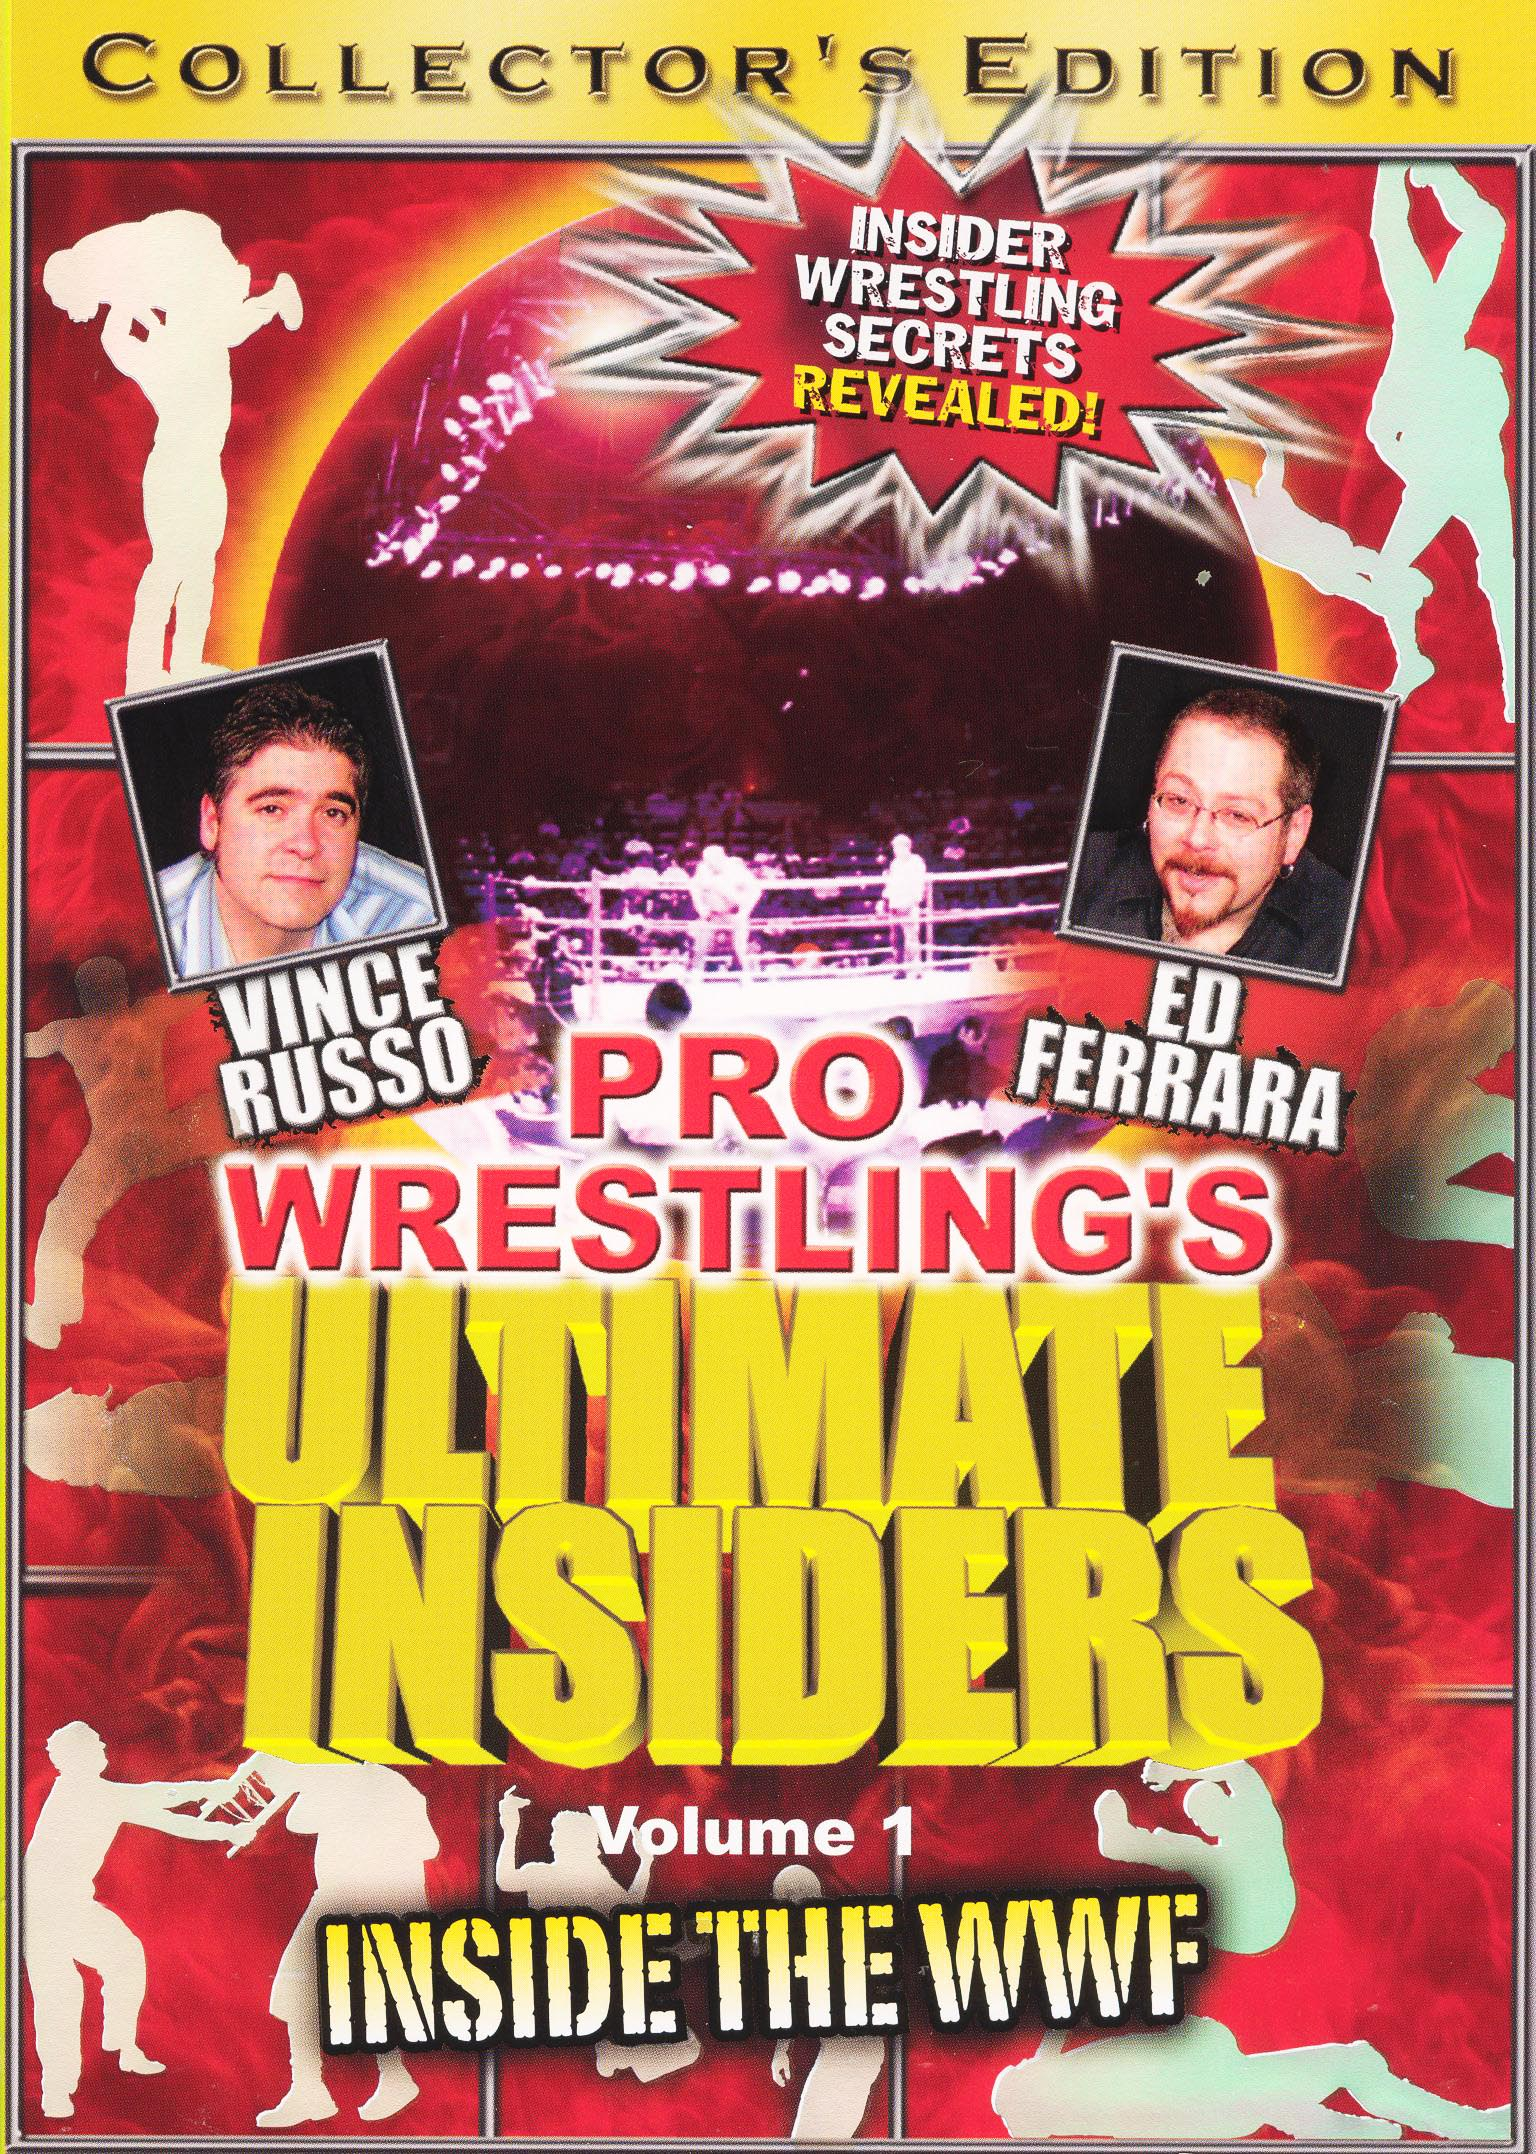 Pro Wrestling's Ultimate Insiders, Vol. 1: Inside the WWF